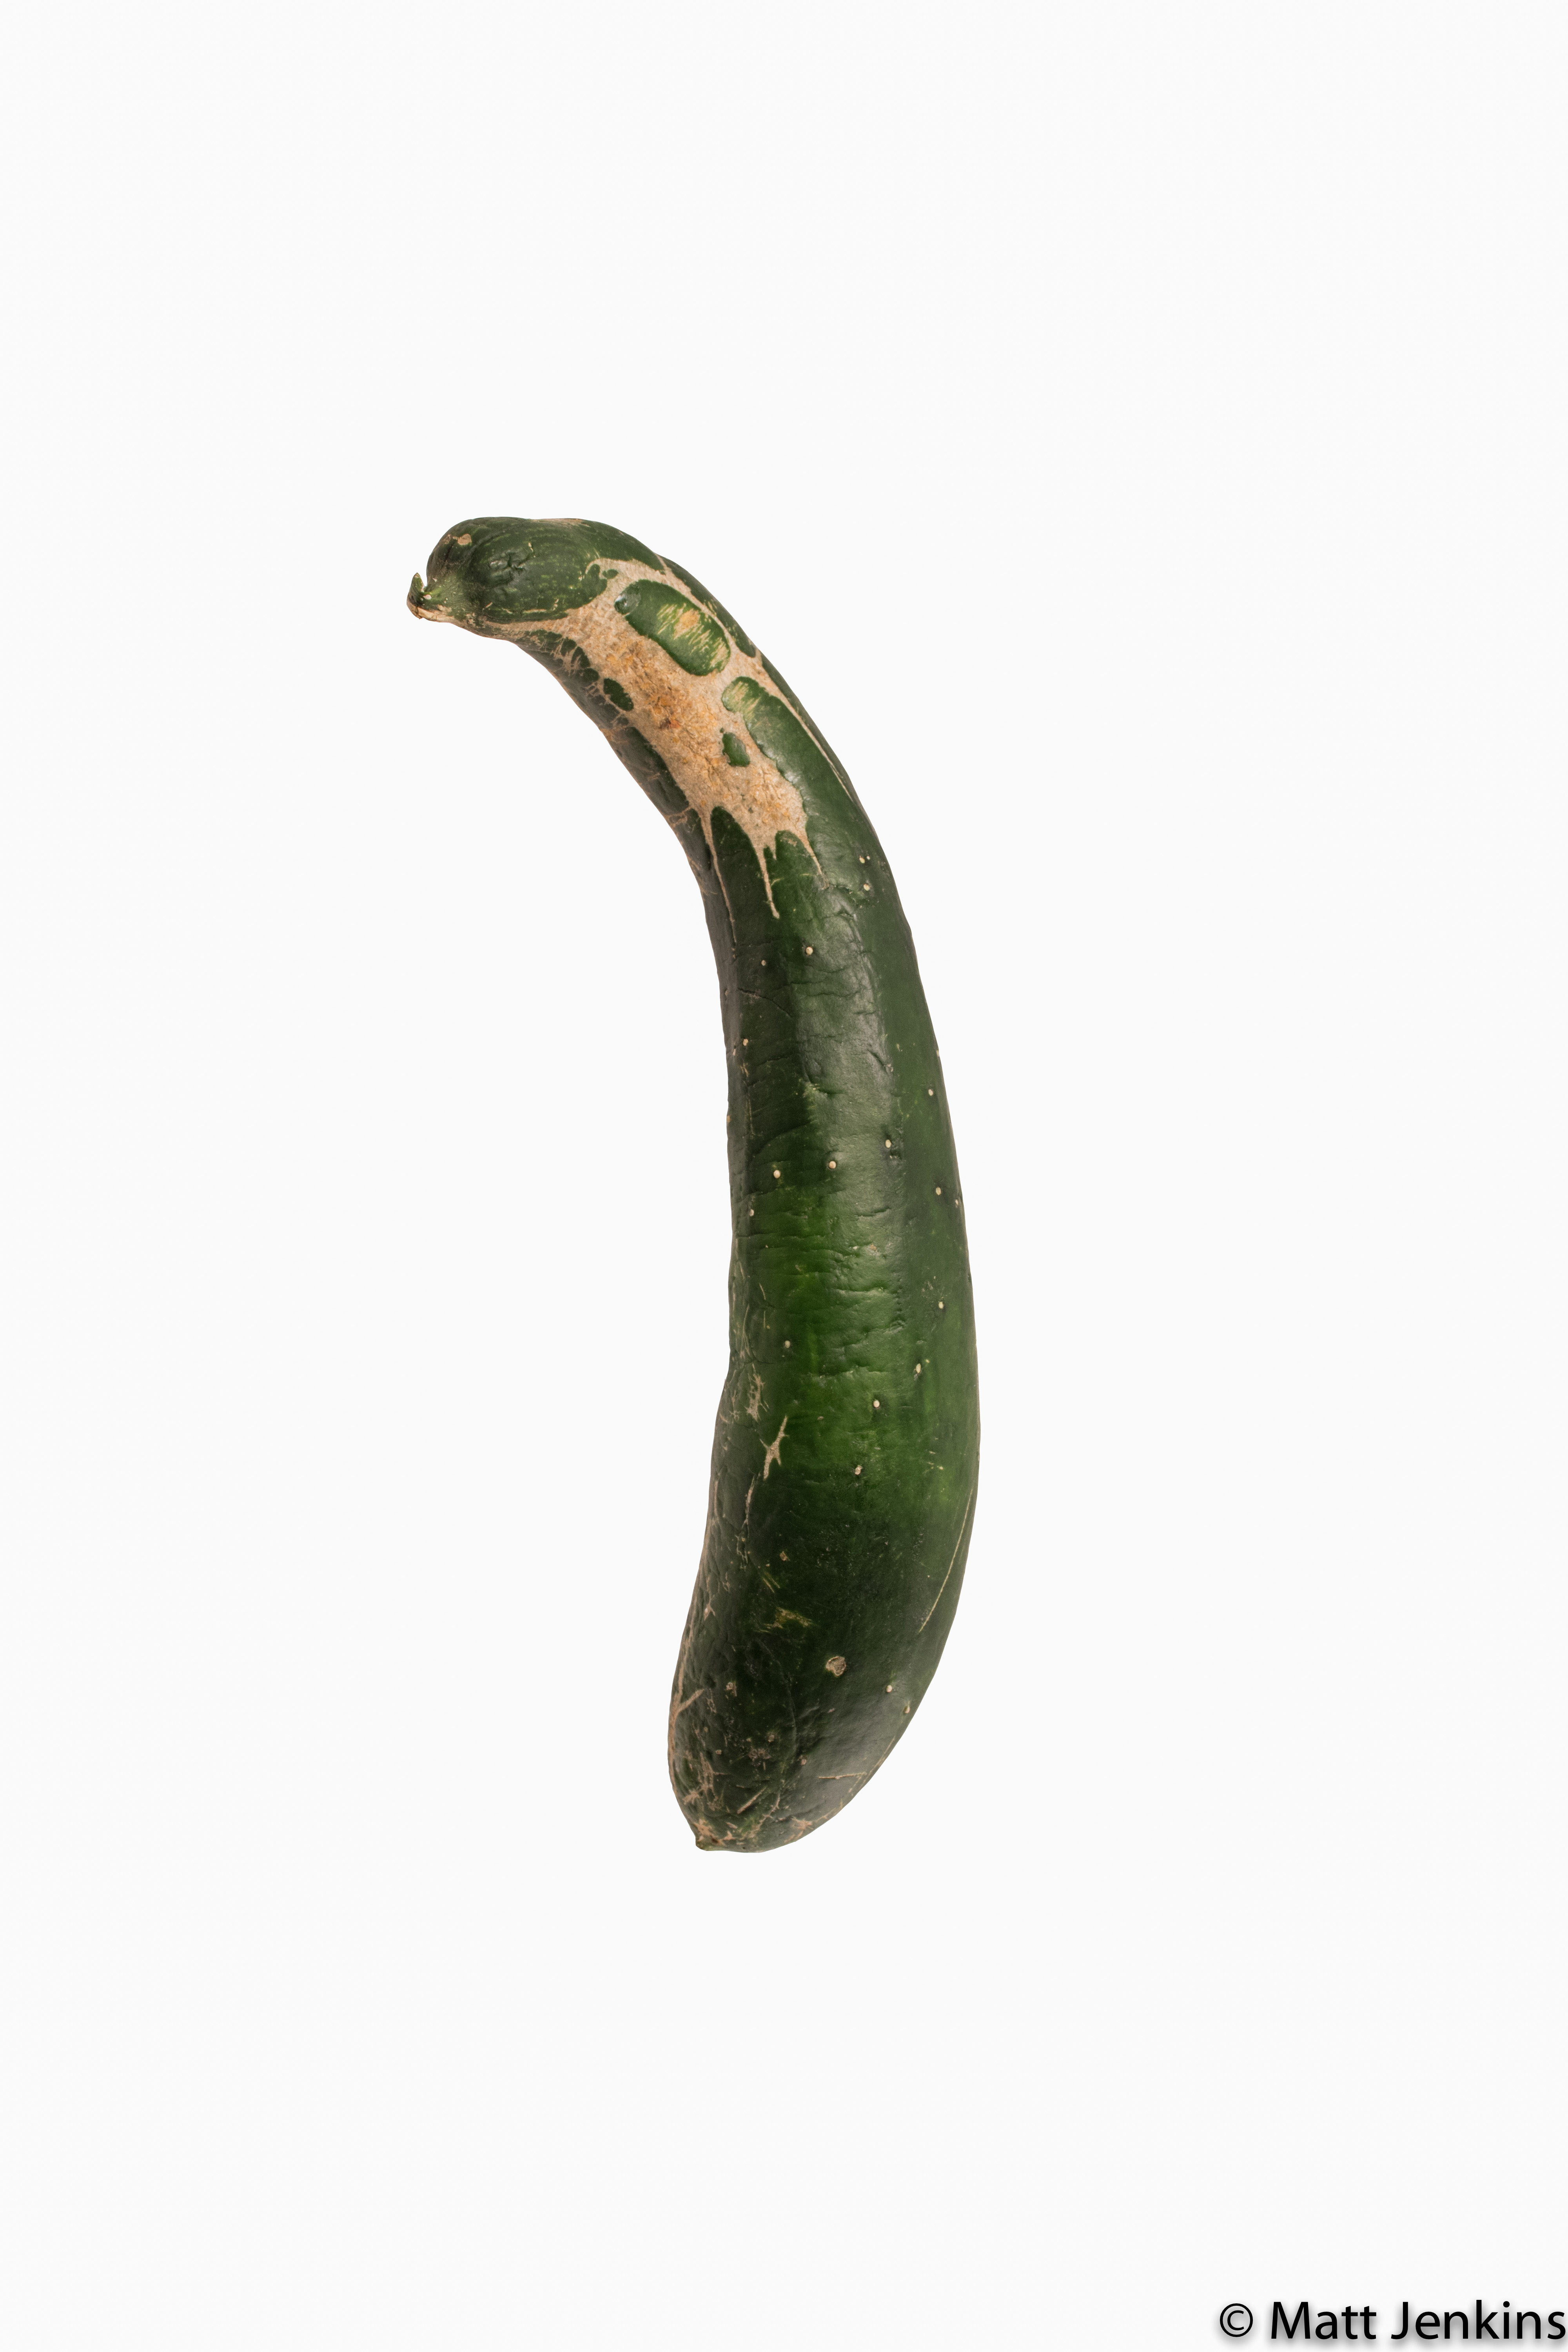 An aesthetically flawed zucchini on white background.